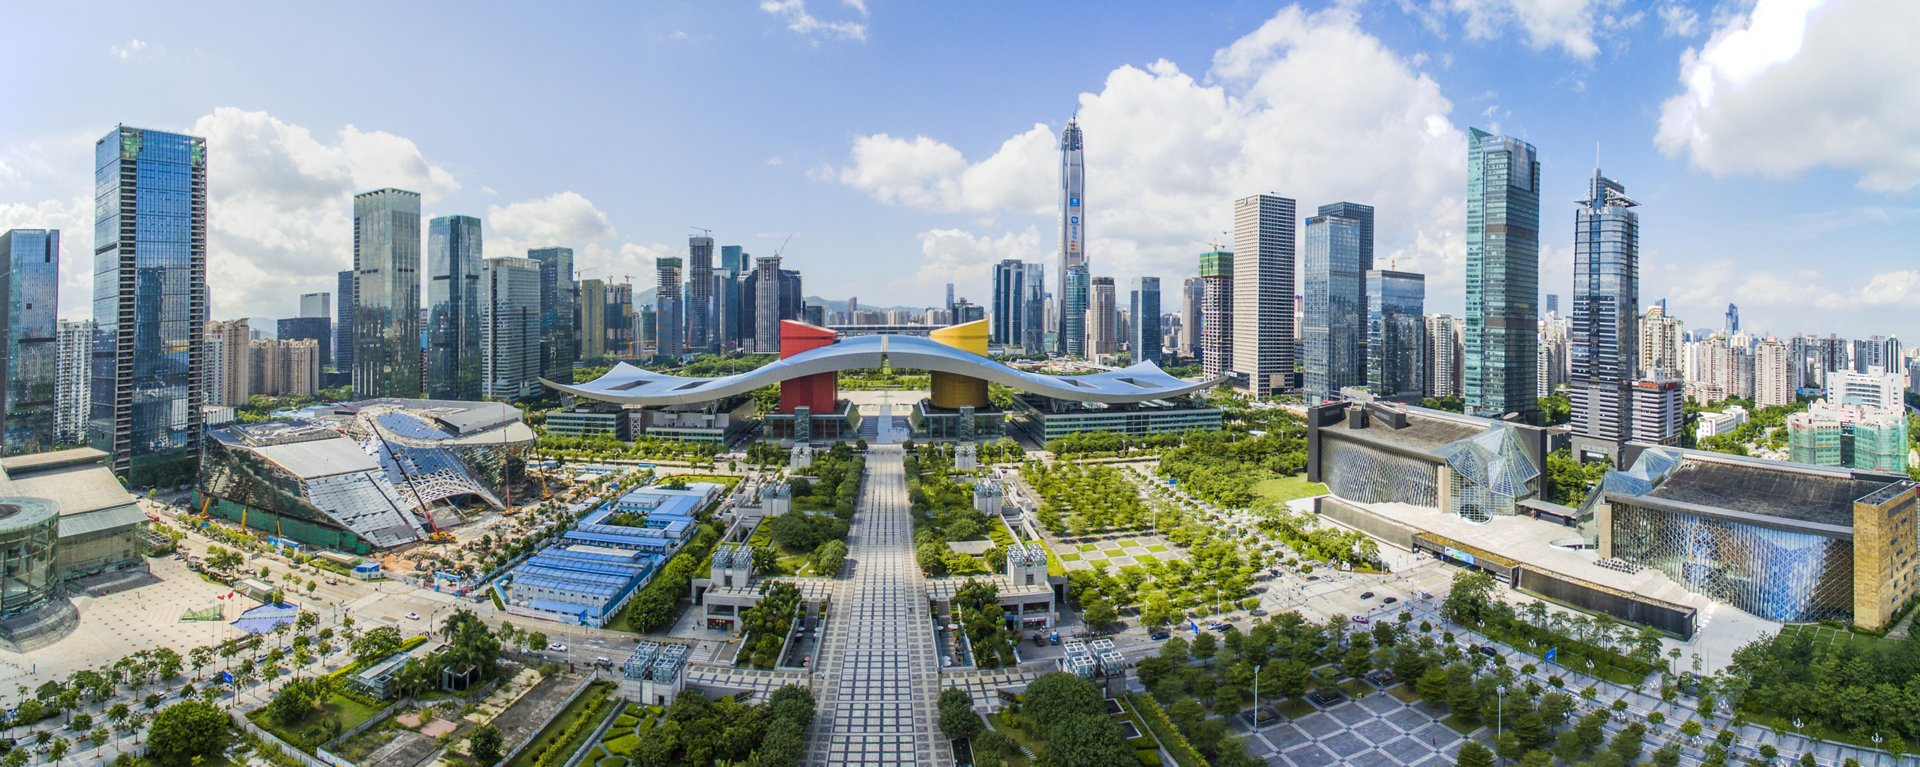 Shenzhen: the innovation powerhouse taking on Silicon Valley